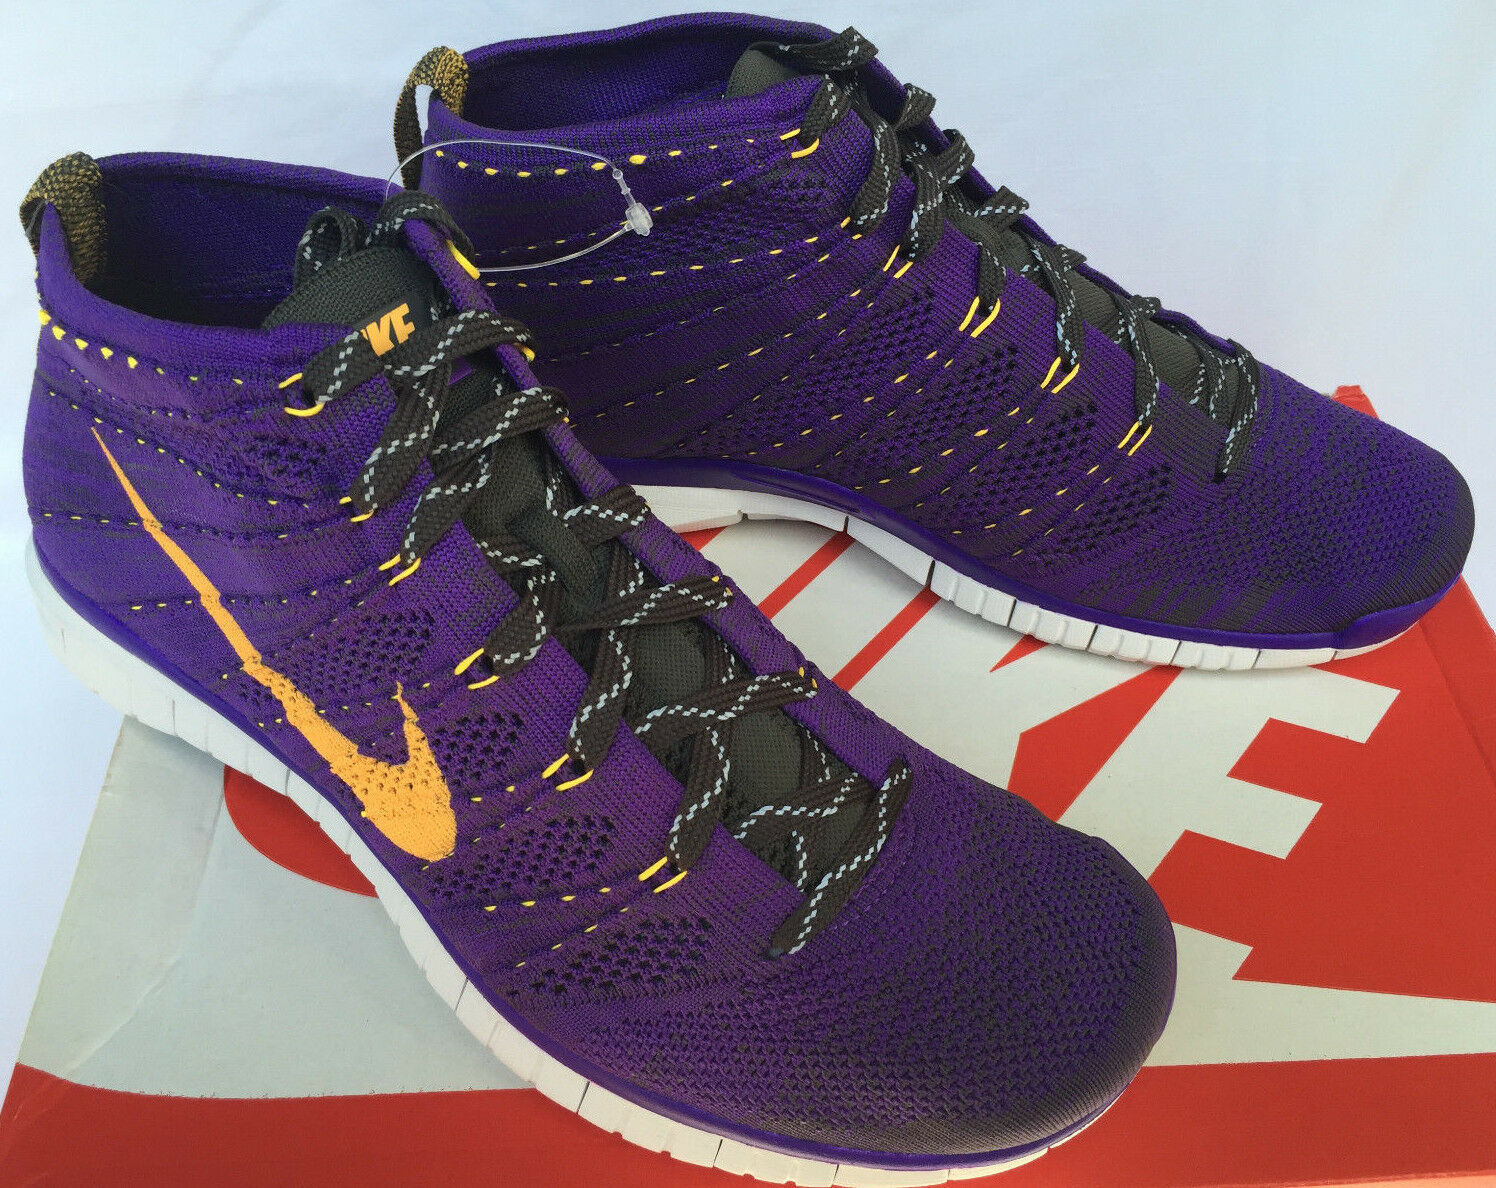 Nike Free Flyknit Trainer Chukka 639700-500 Grape Running Boots Shoes Men's 10.5 Brand discount